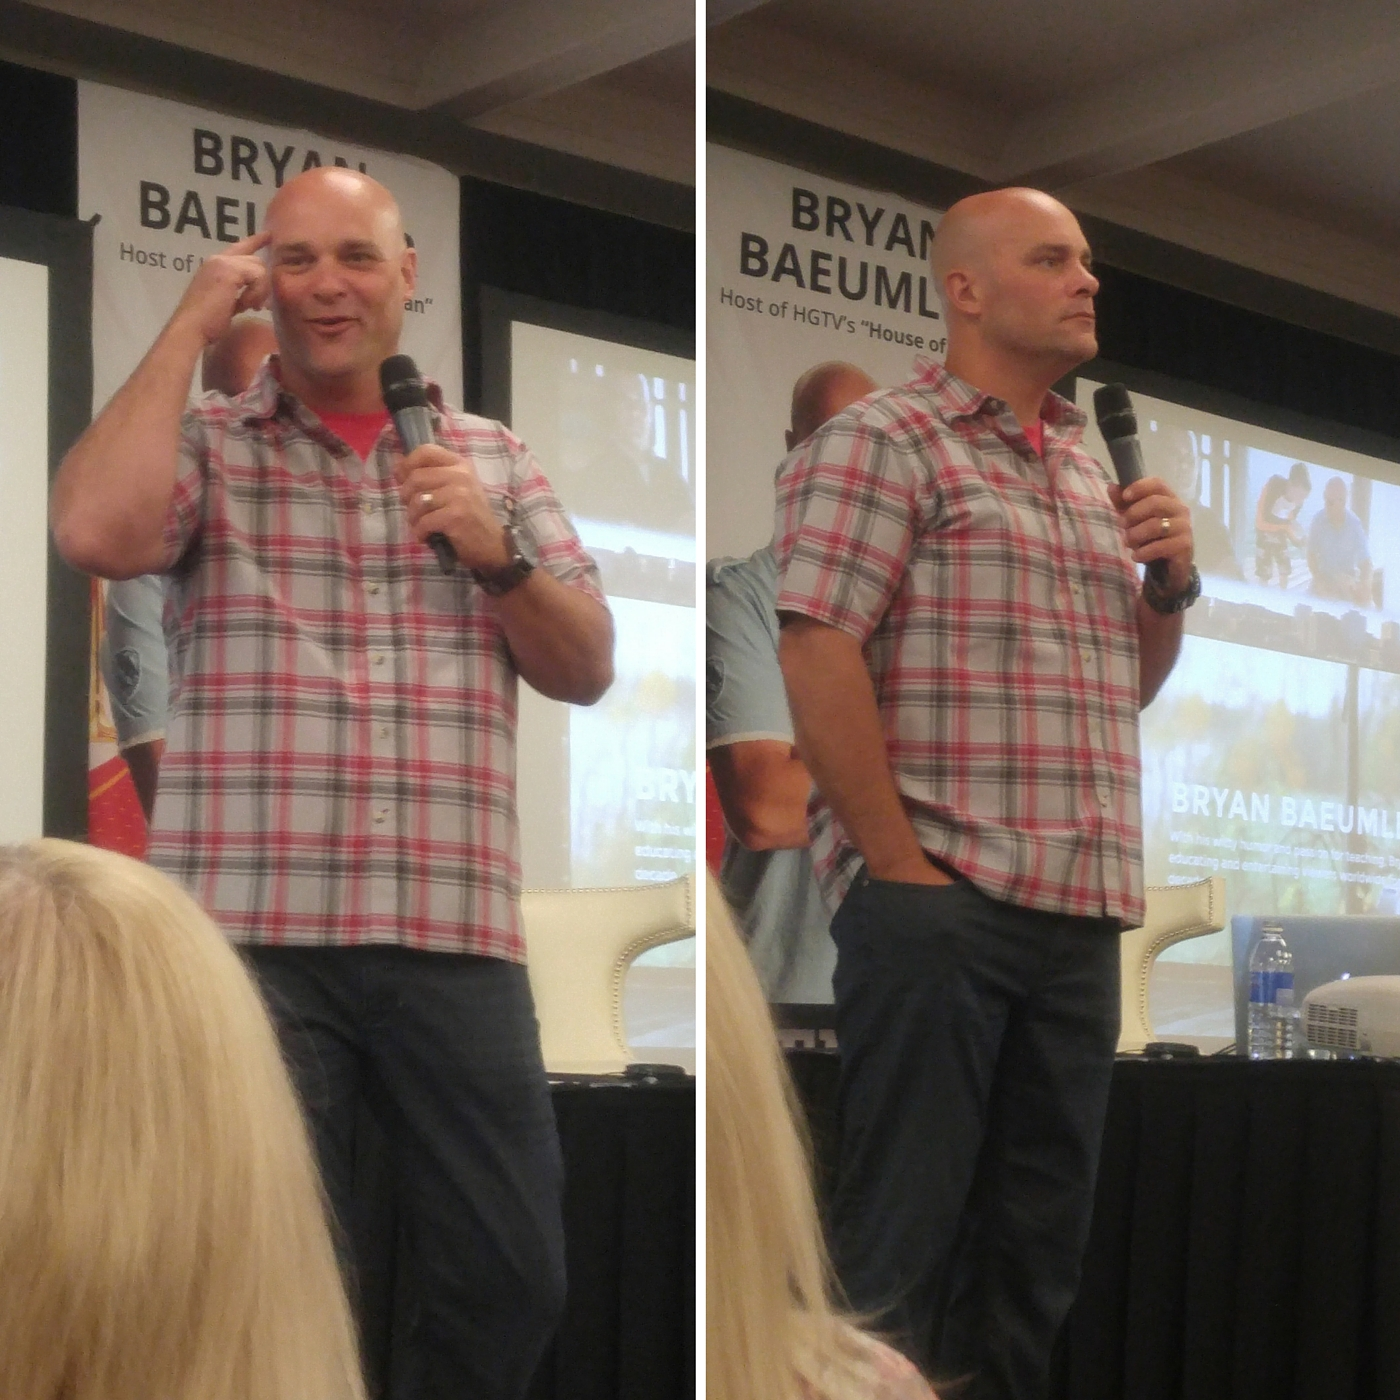 Bryan Baeumler at the Westin Halifax NS 40 Minutes with Bryan